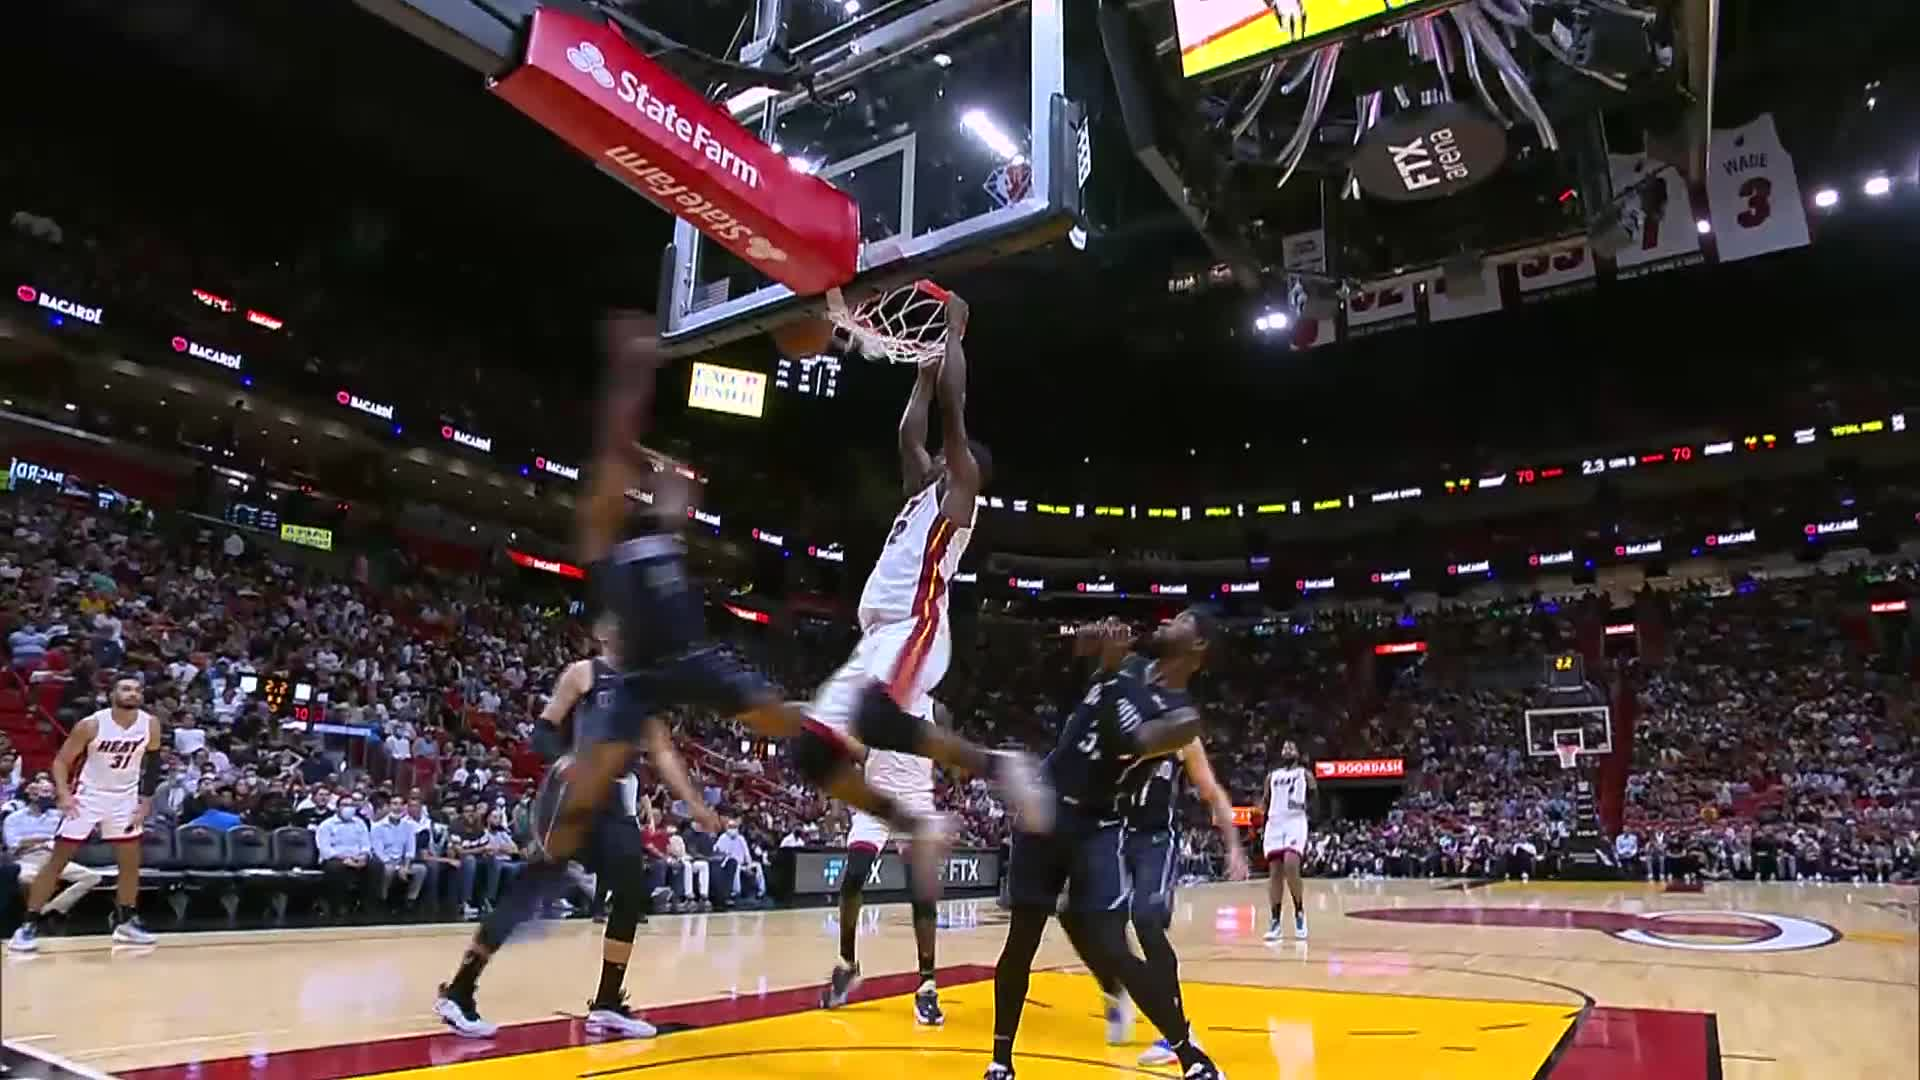 Jimmy Butler with 36pts, 5 stls, 3reb after the HEAT's win over the Magic